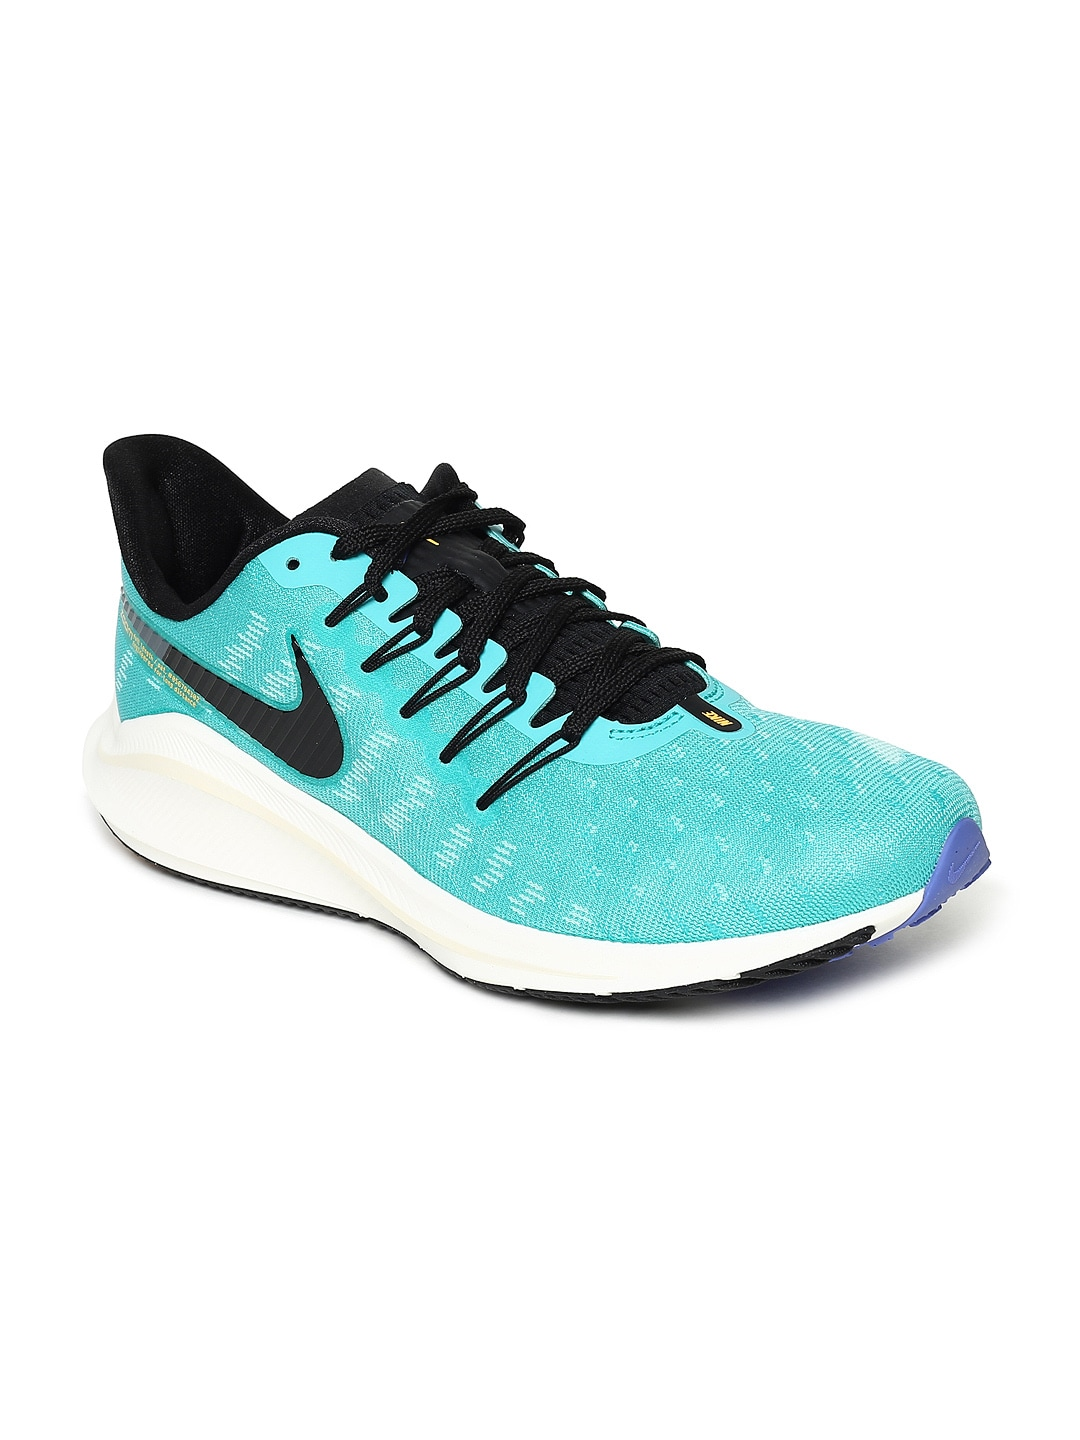 493bbbffe Women Shoes - Buy Shoes for Women online in India